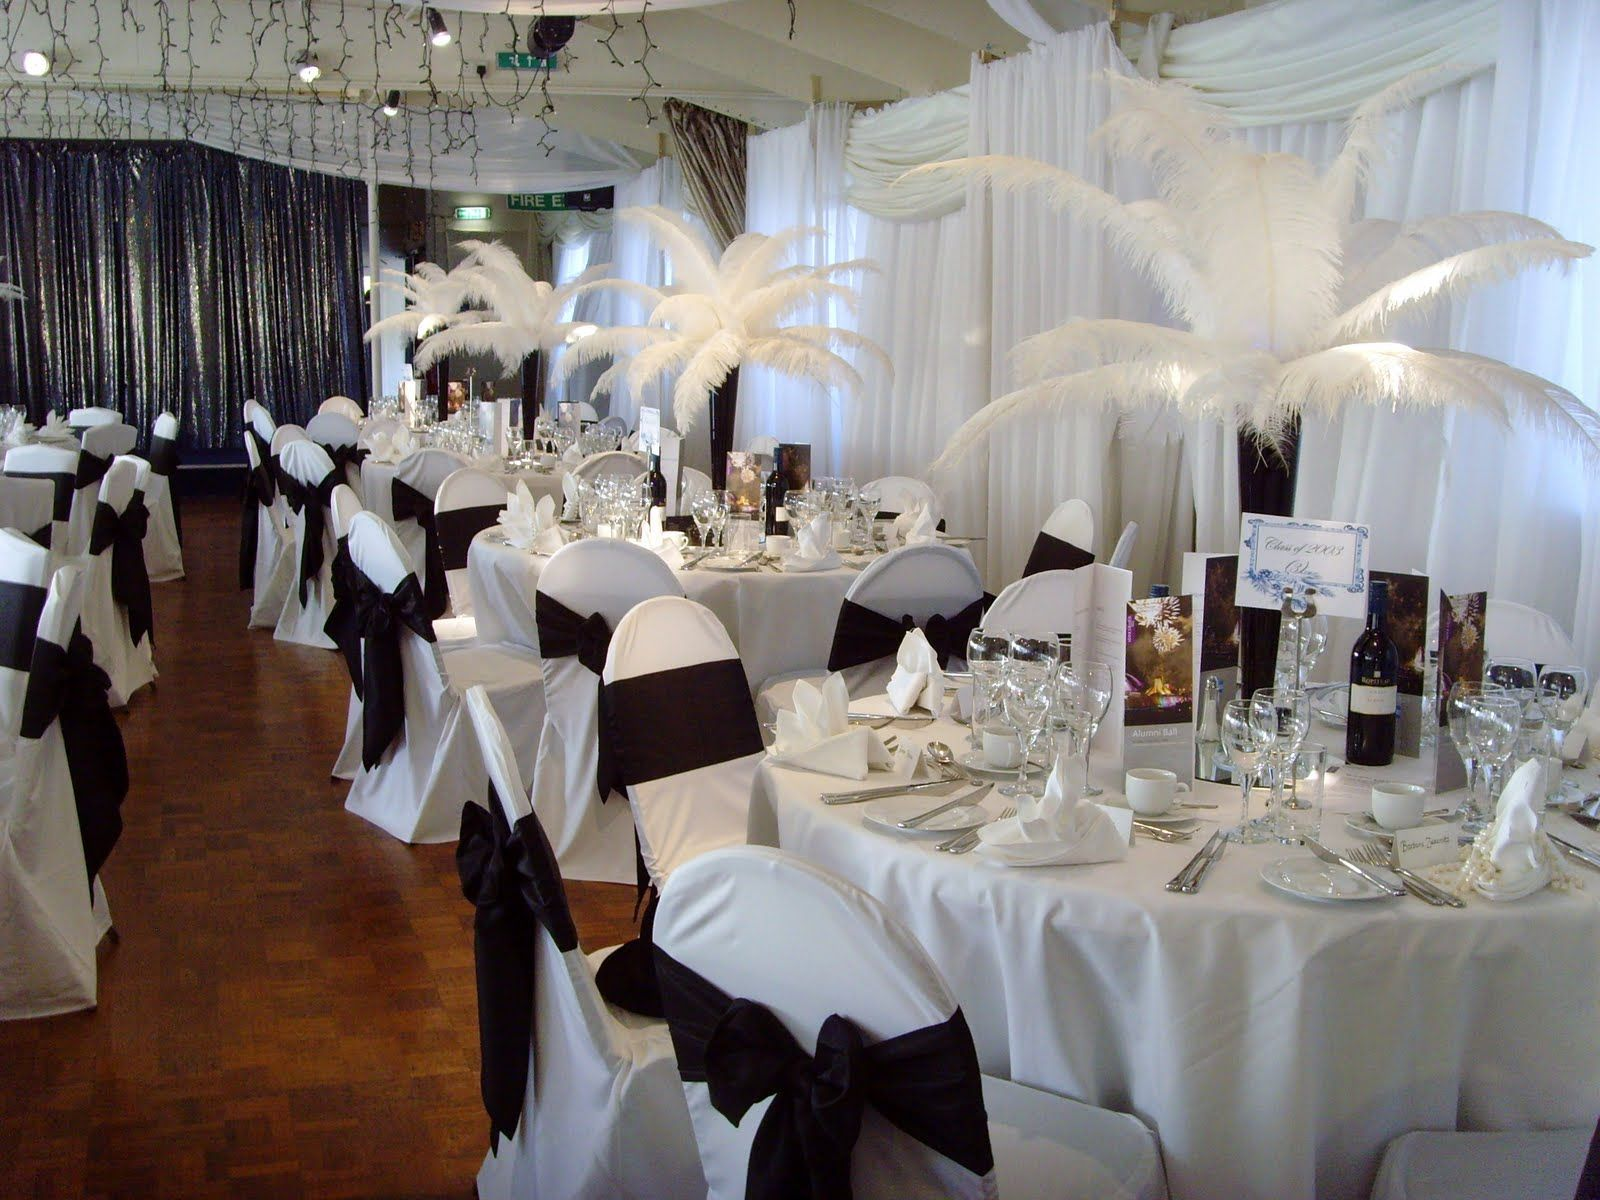 Decorate table behind wedding arch the best wedding decorations decorate table behind wedding arch the best wedding decorations wedding venues decorations guide junglespirit Gallery